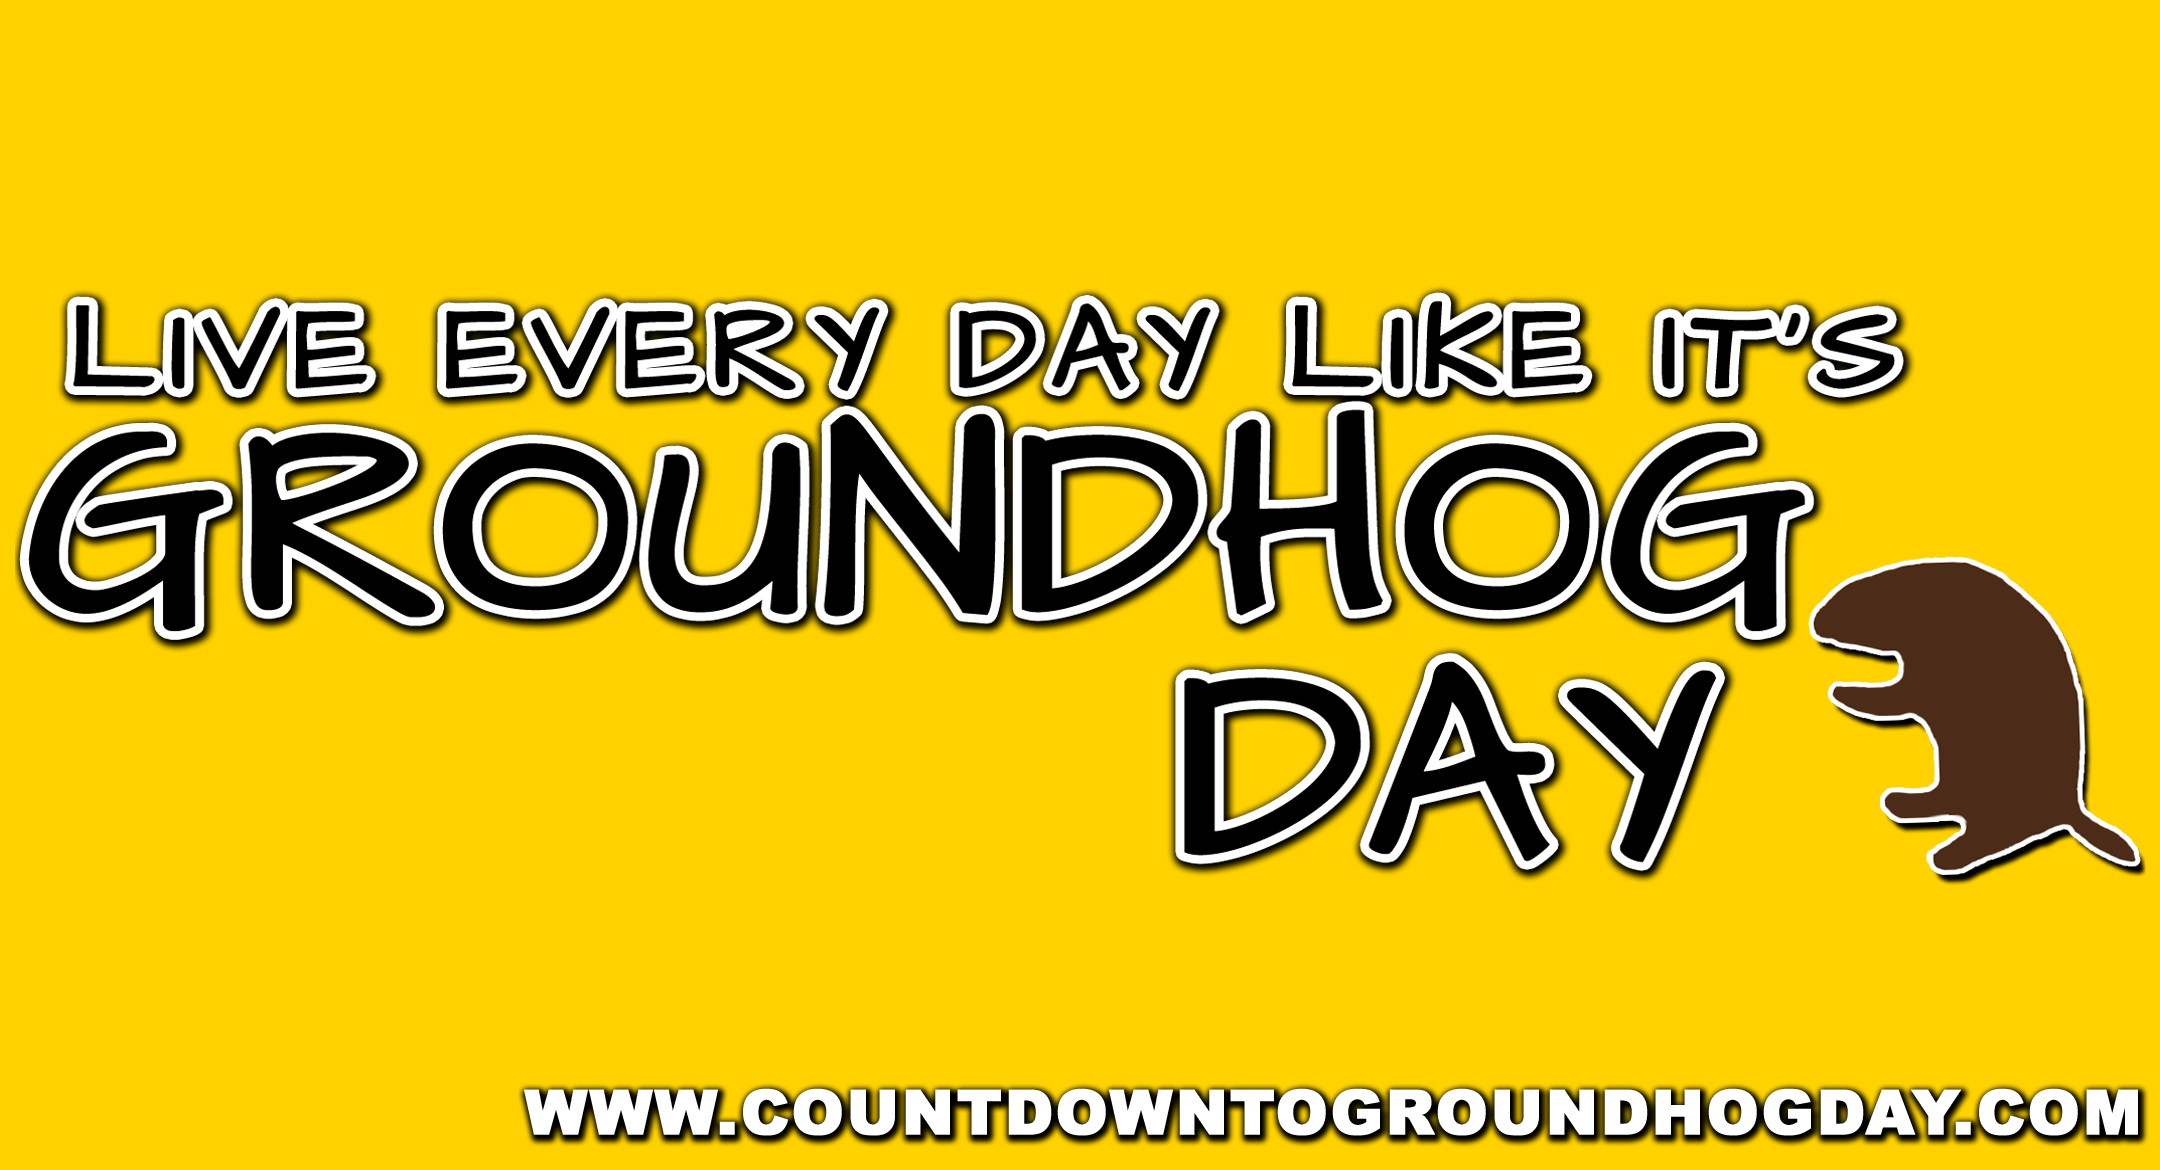 Live every day like it's Groundhog Day